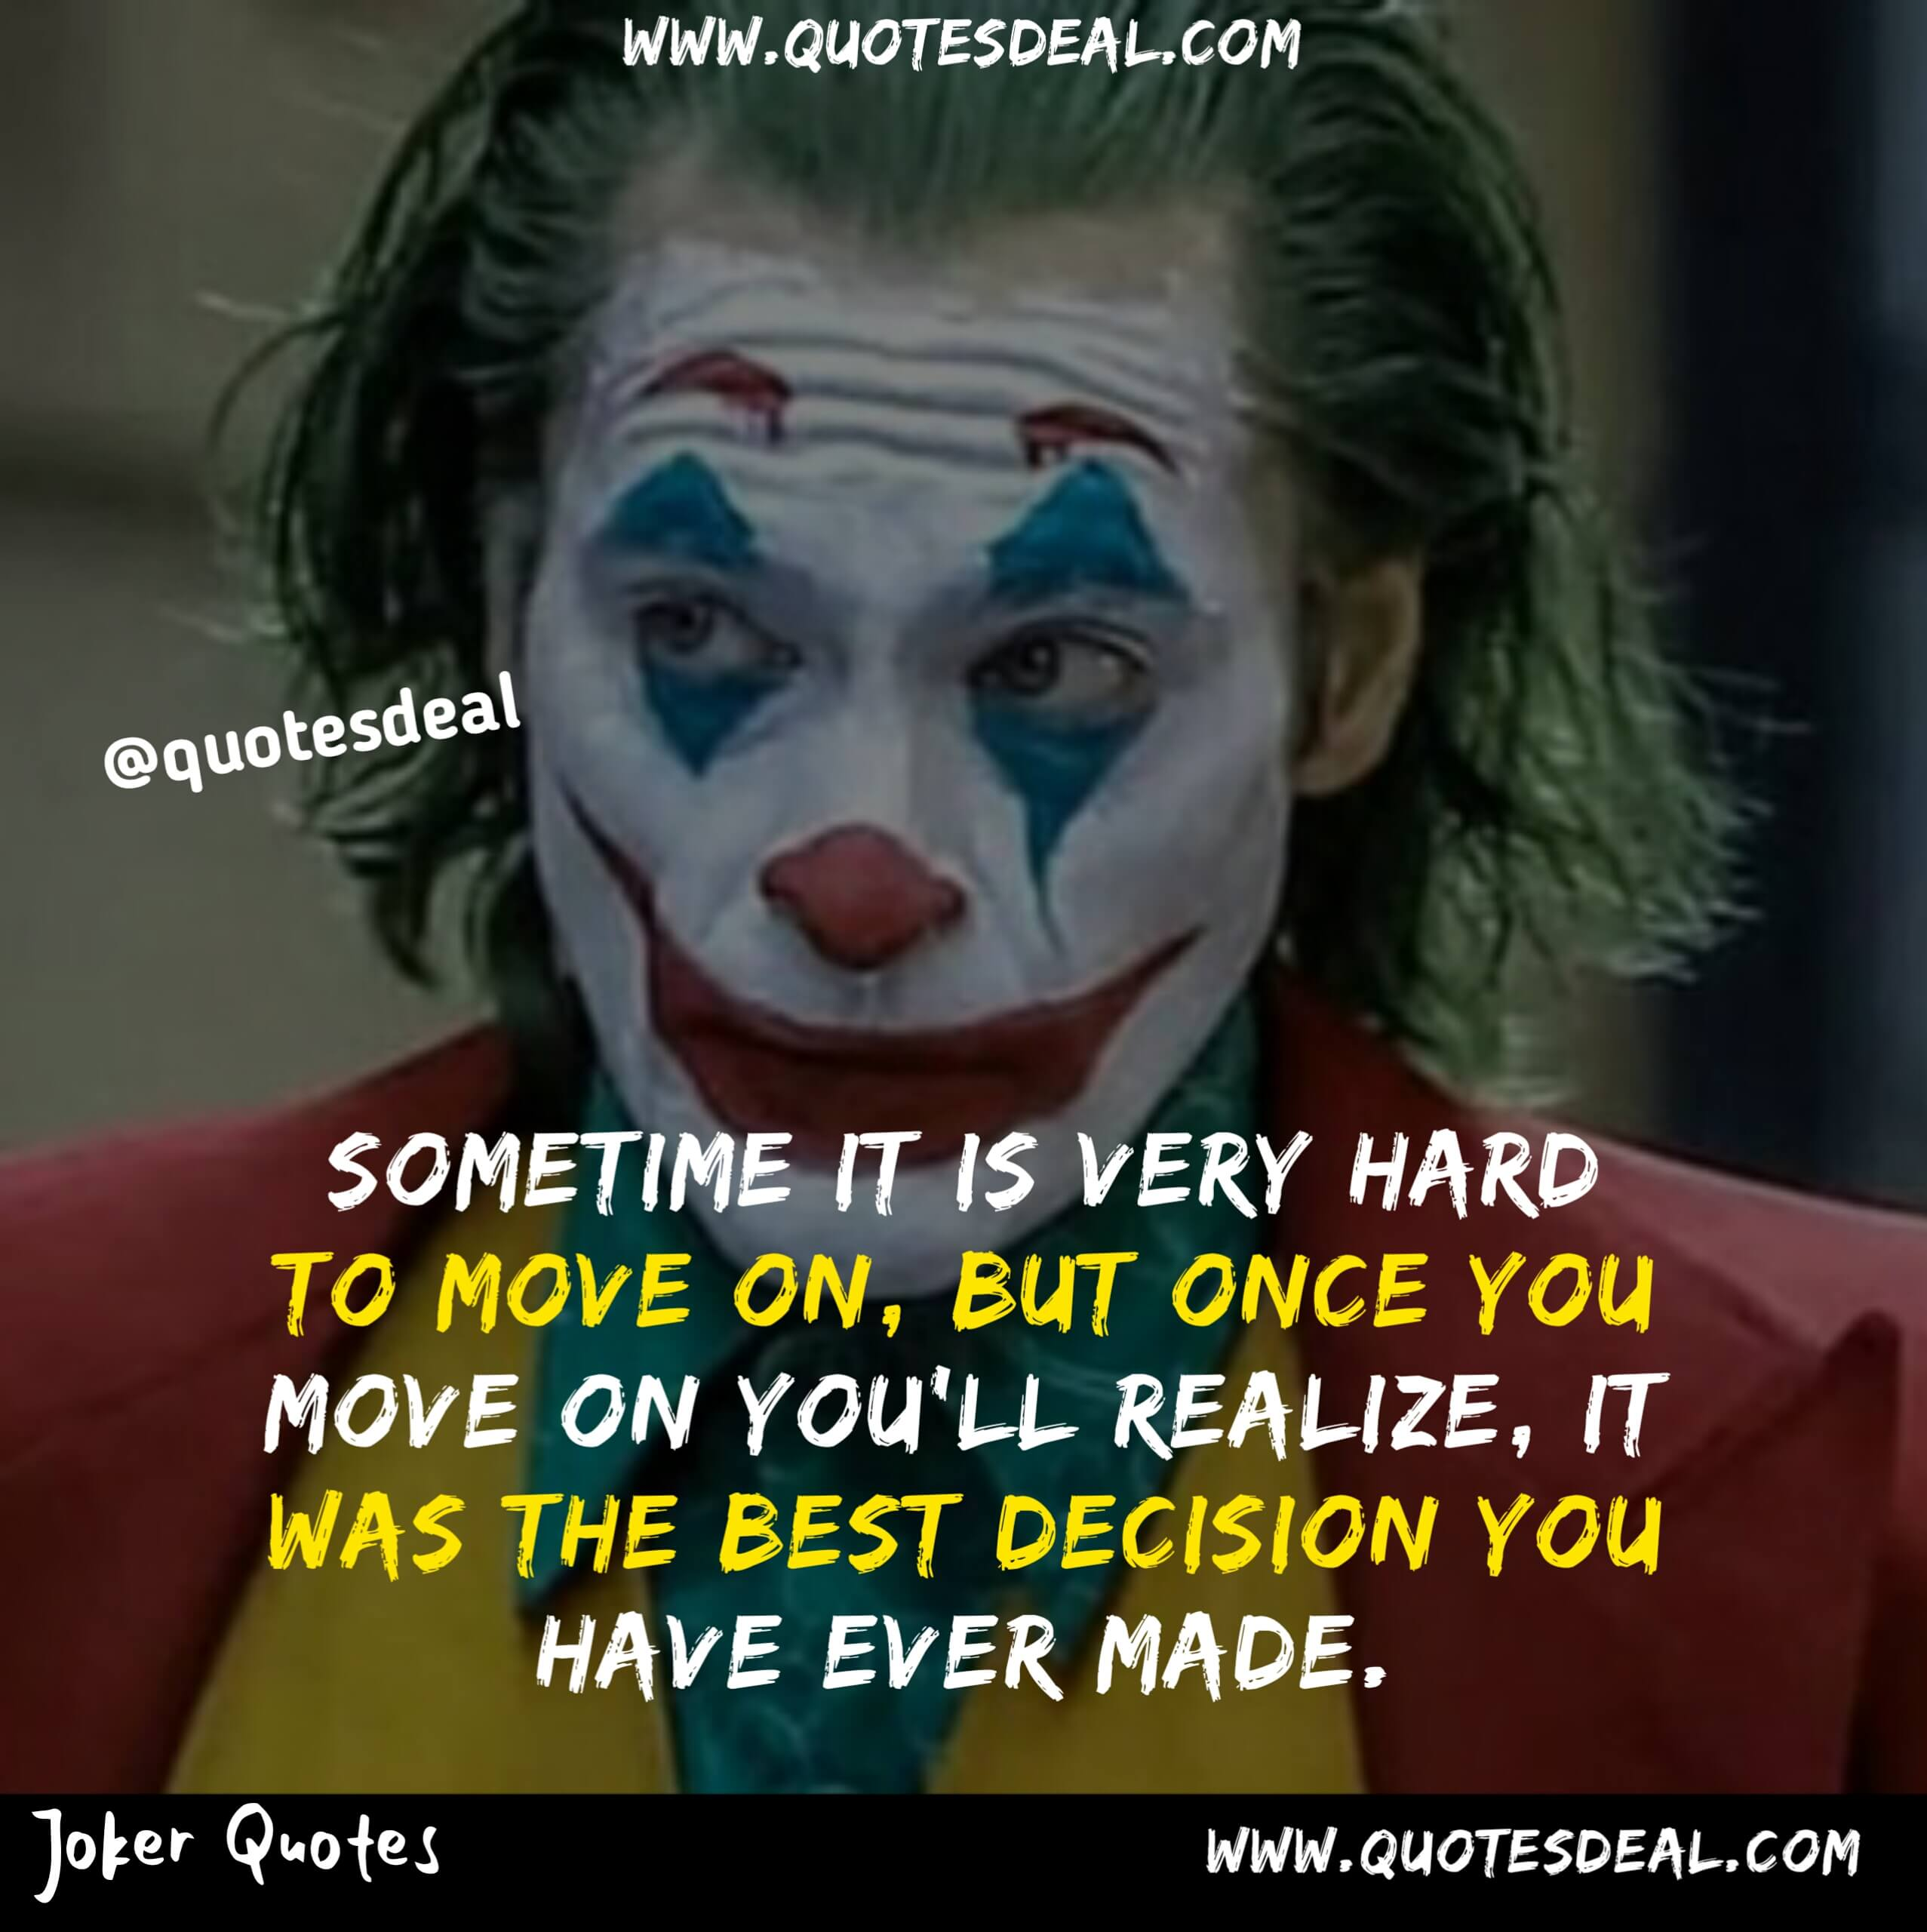 Sometime it is very hard to move on